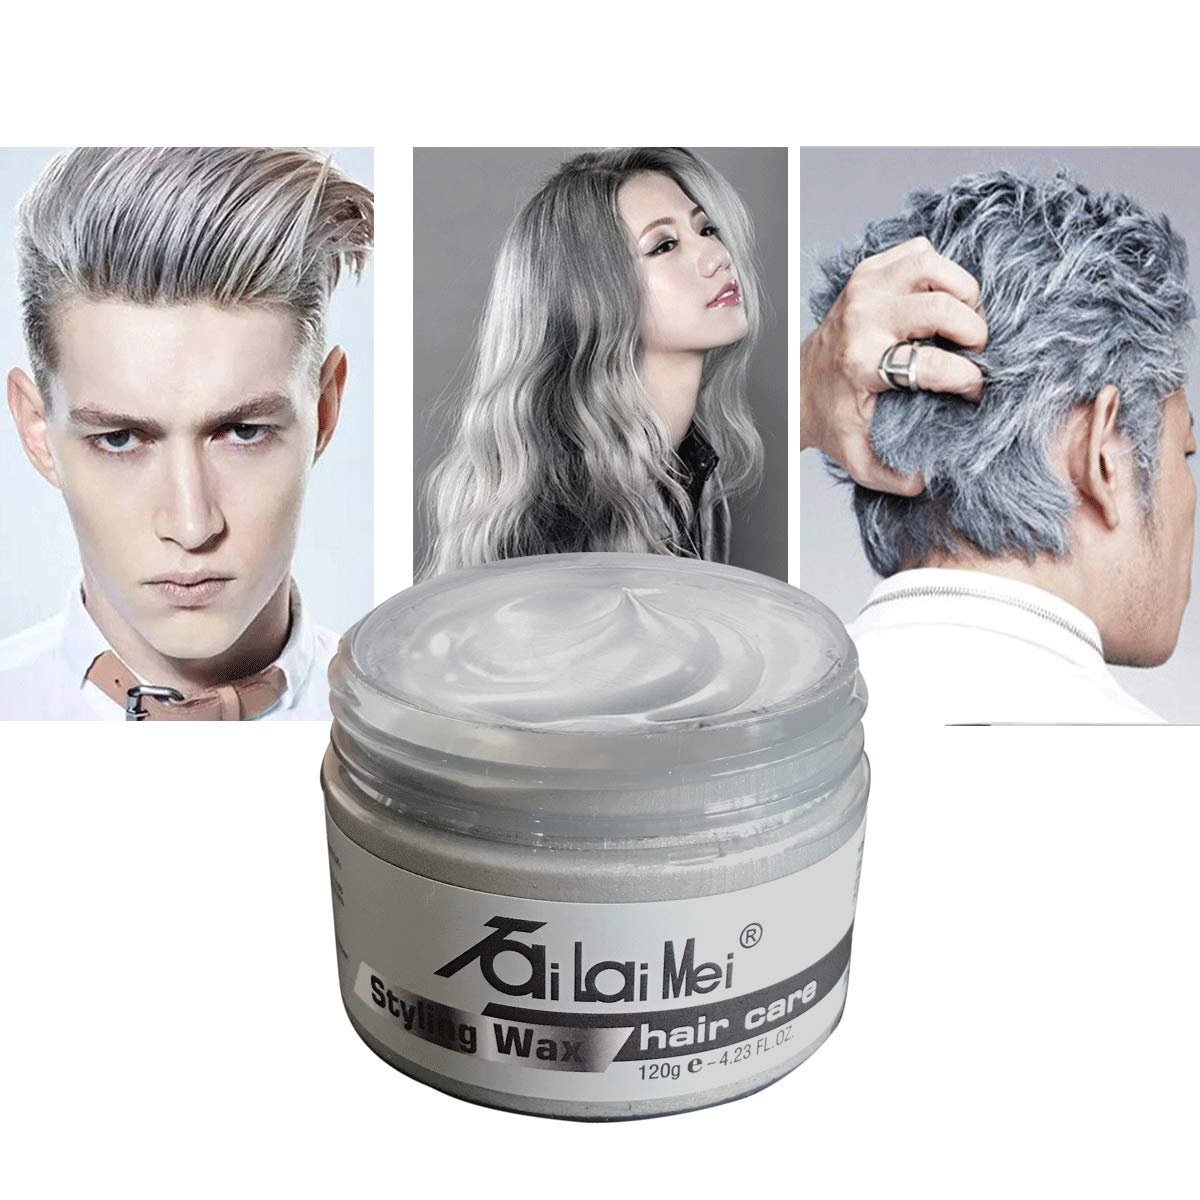 Temporary Silver Gray Hair Wax 4.23oz, Instant Hairstyle Mud Cream, Hair Pomades for Party, Cosplay, Nightclub, Masquerade, Halloween. by TailaiMei